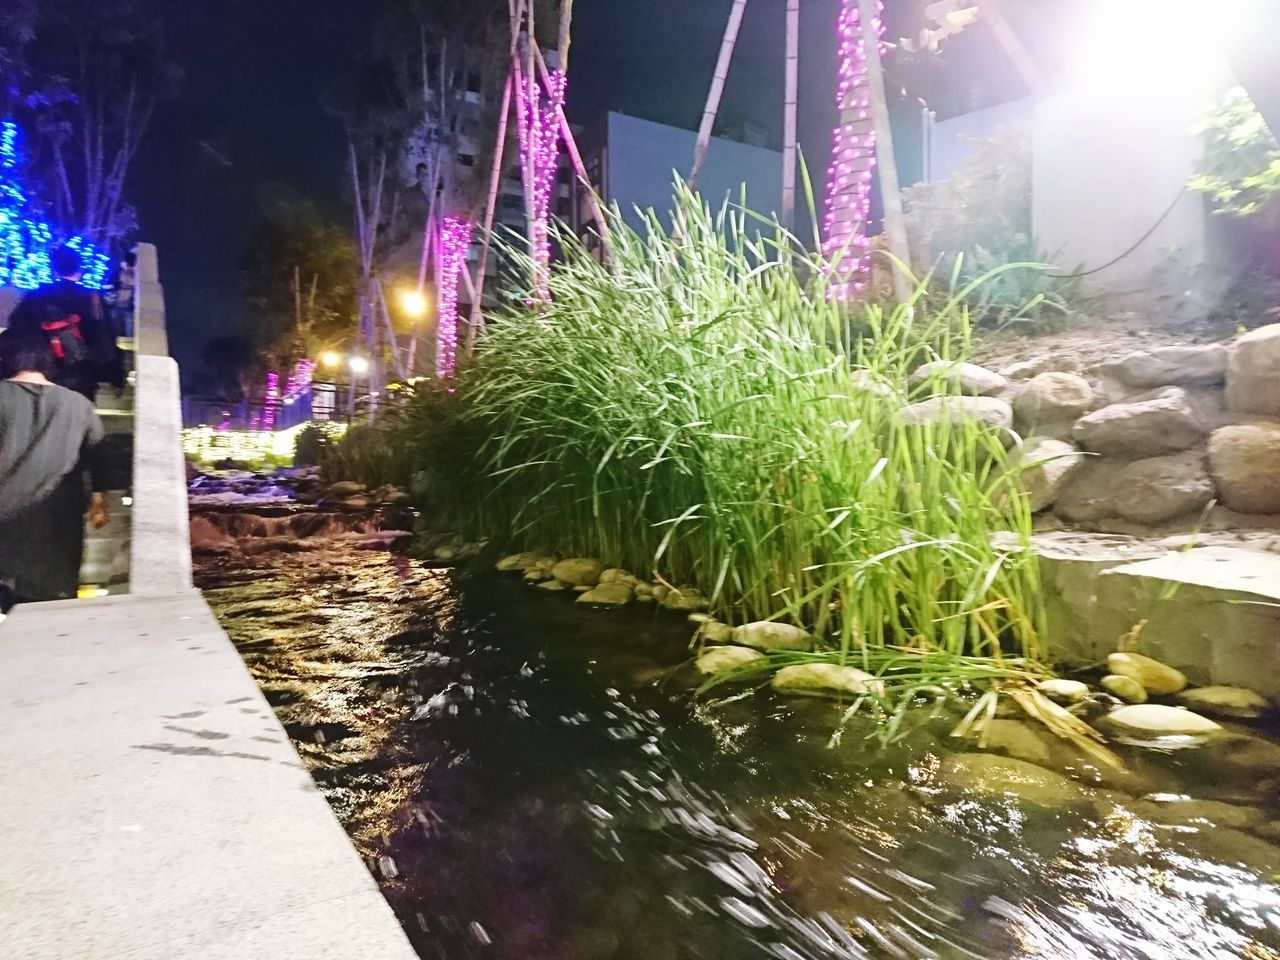 illuminated, water, night, incidental people, nature, plant, architecture, outdoors, lighting equipment, built structure, street, motion, city, decoration, rock, solid, market, building exterior